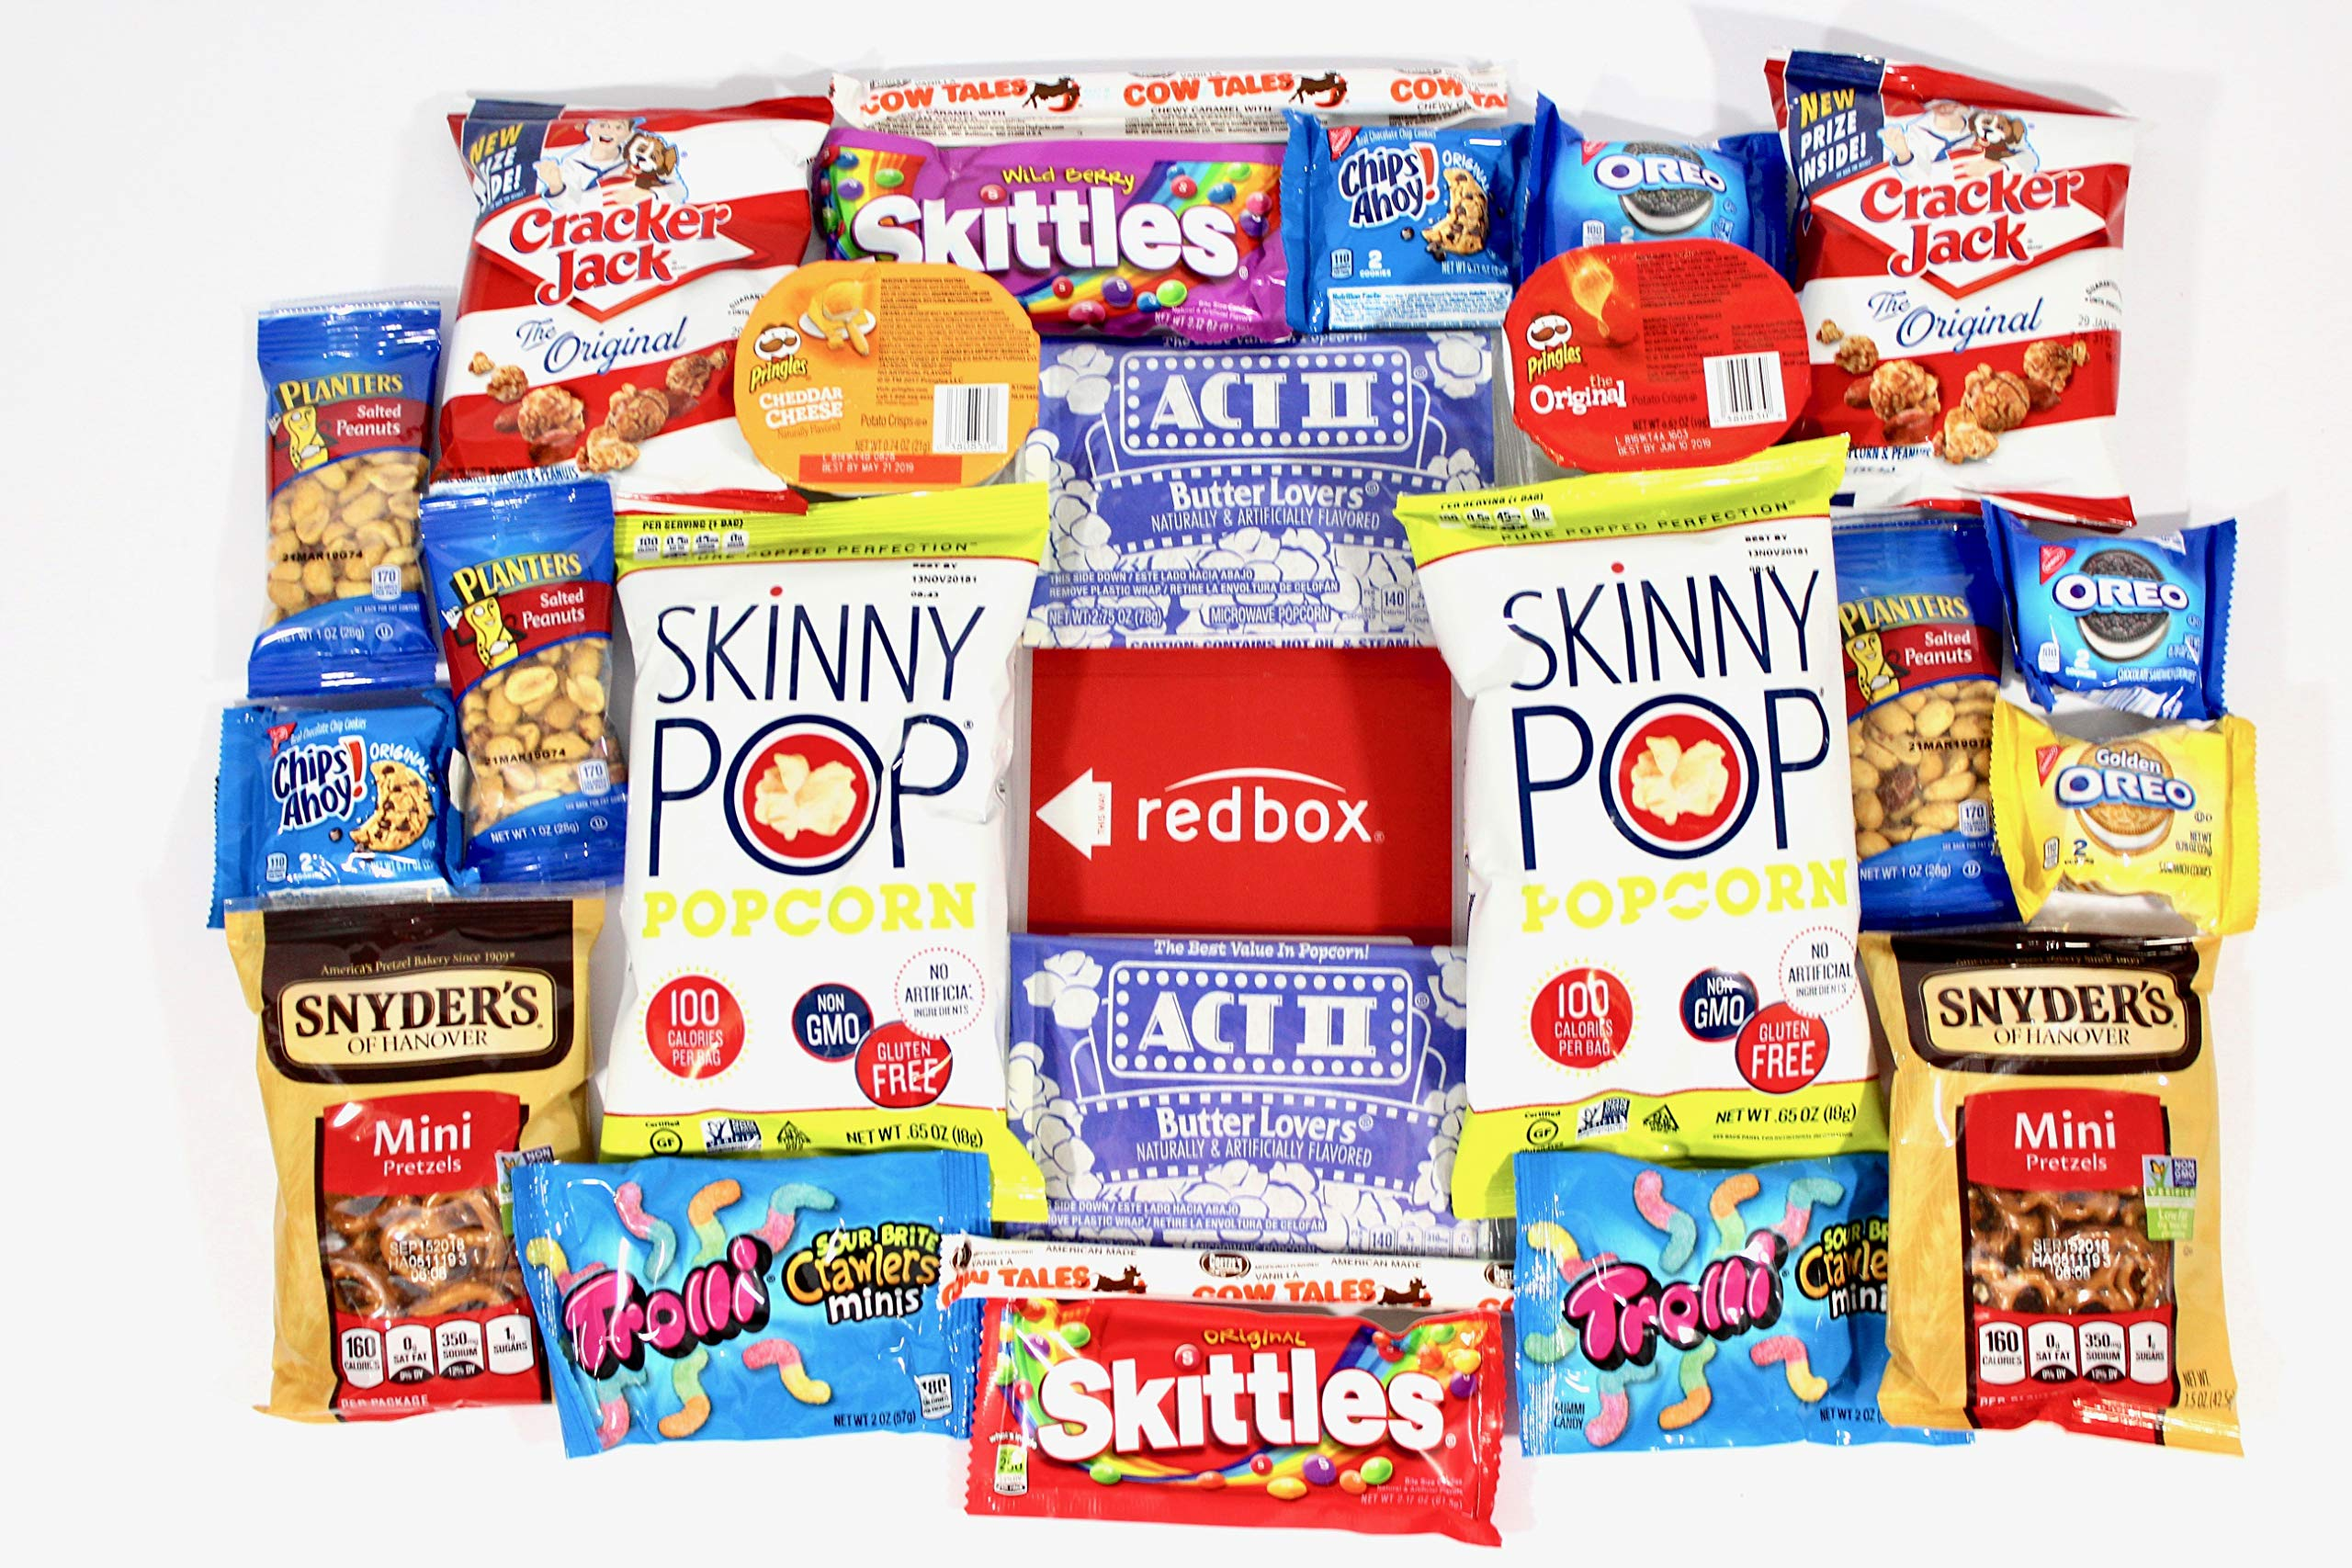 ultimate movie night care package full of delicious snacks and redbox rental code - Redbox Christmas Movies